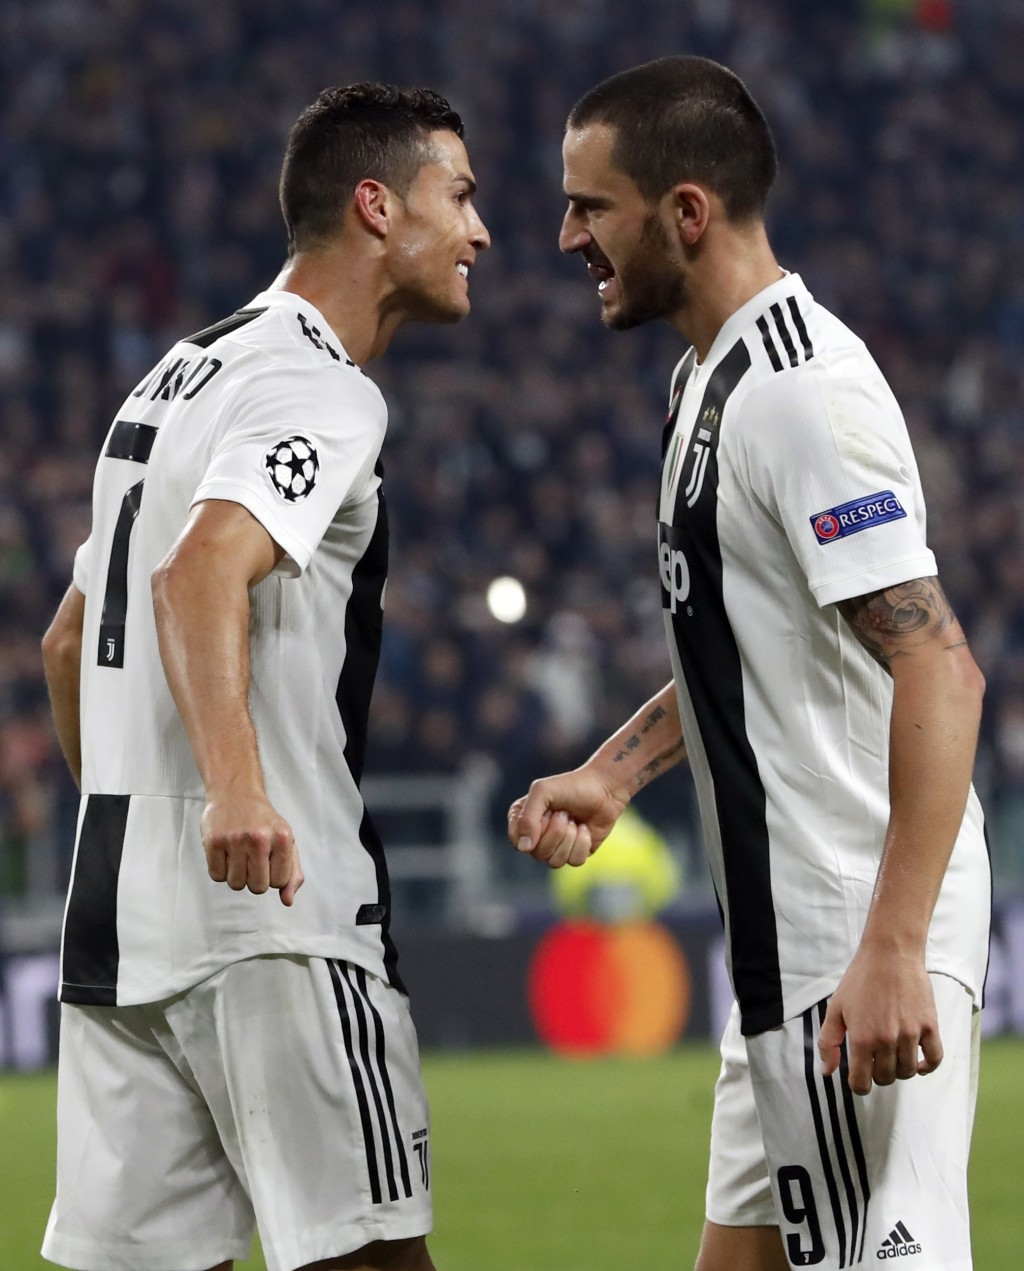 Juventus forward Cristiano Ronaldo celebrates with teammate Leonardo Bonucci, right, after scoring his side's opening goal during the Champions League